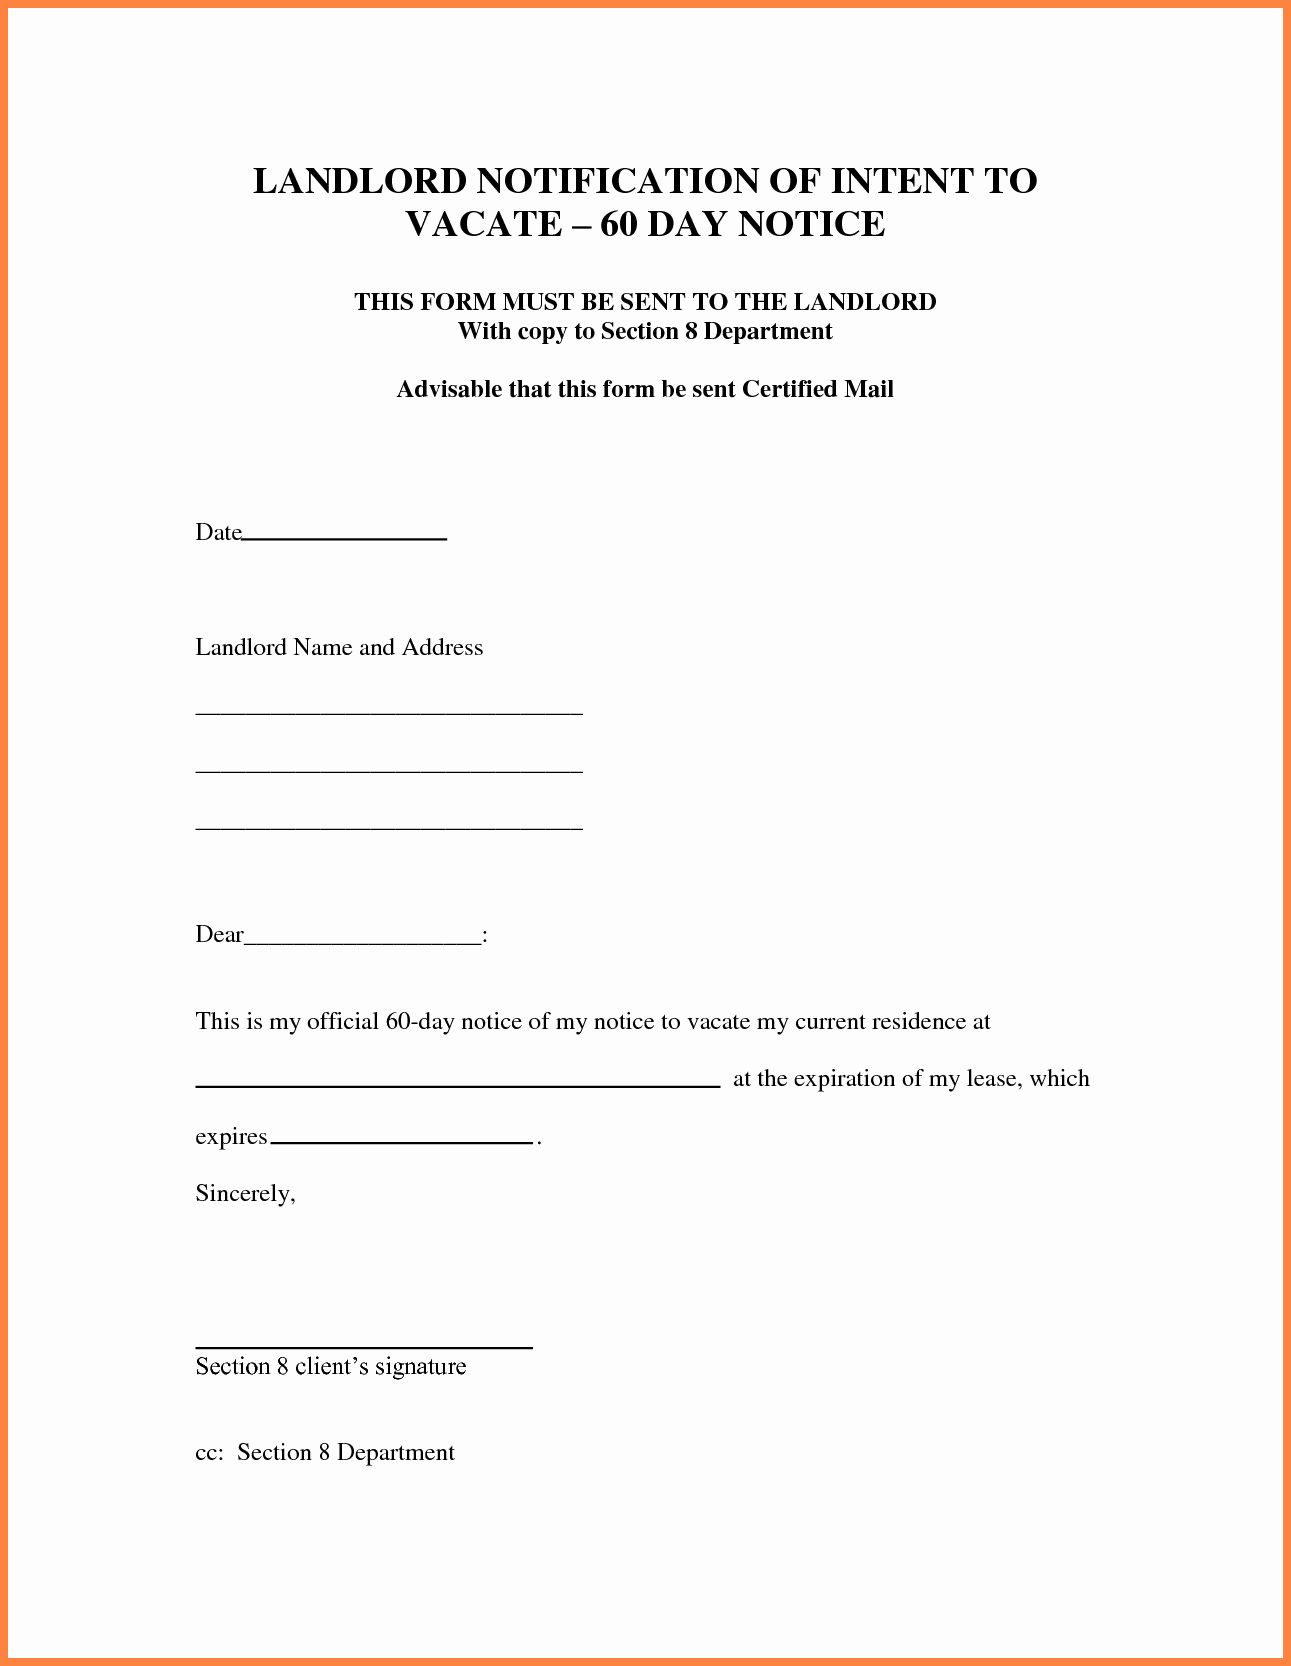 30 Day Notice Letter Template Luxury 9 30 Day Notice To Vacate Letter Template Being A Landlord Letter Templates Lettering 30 day notice to landlord template